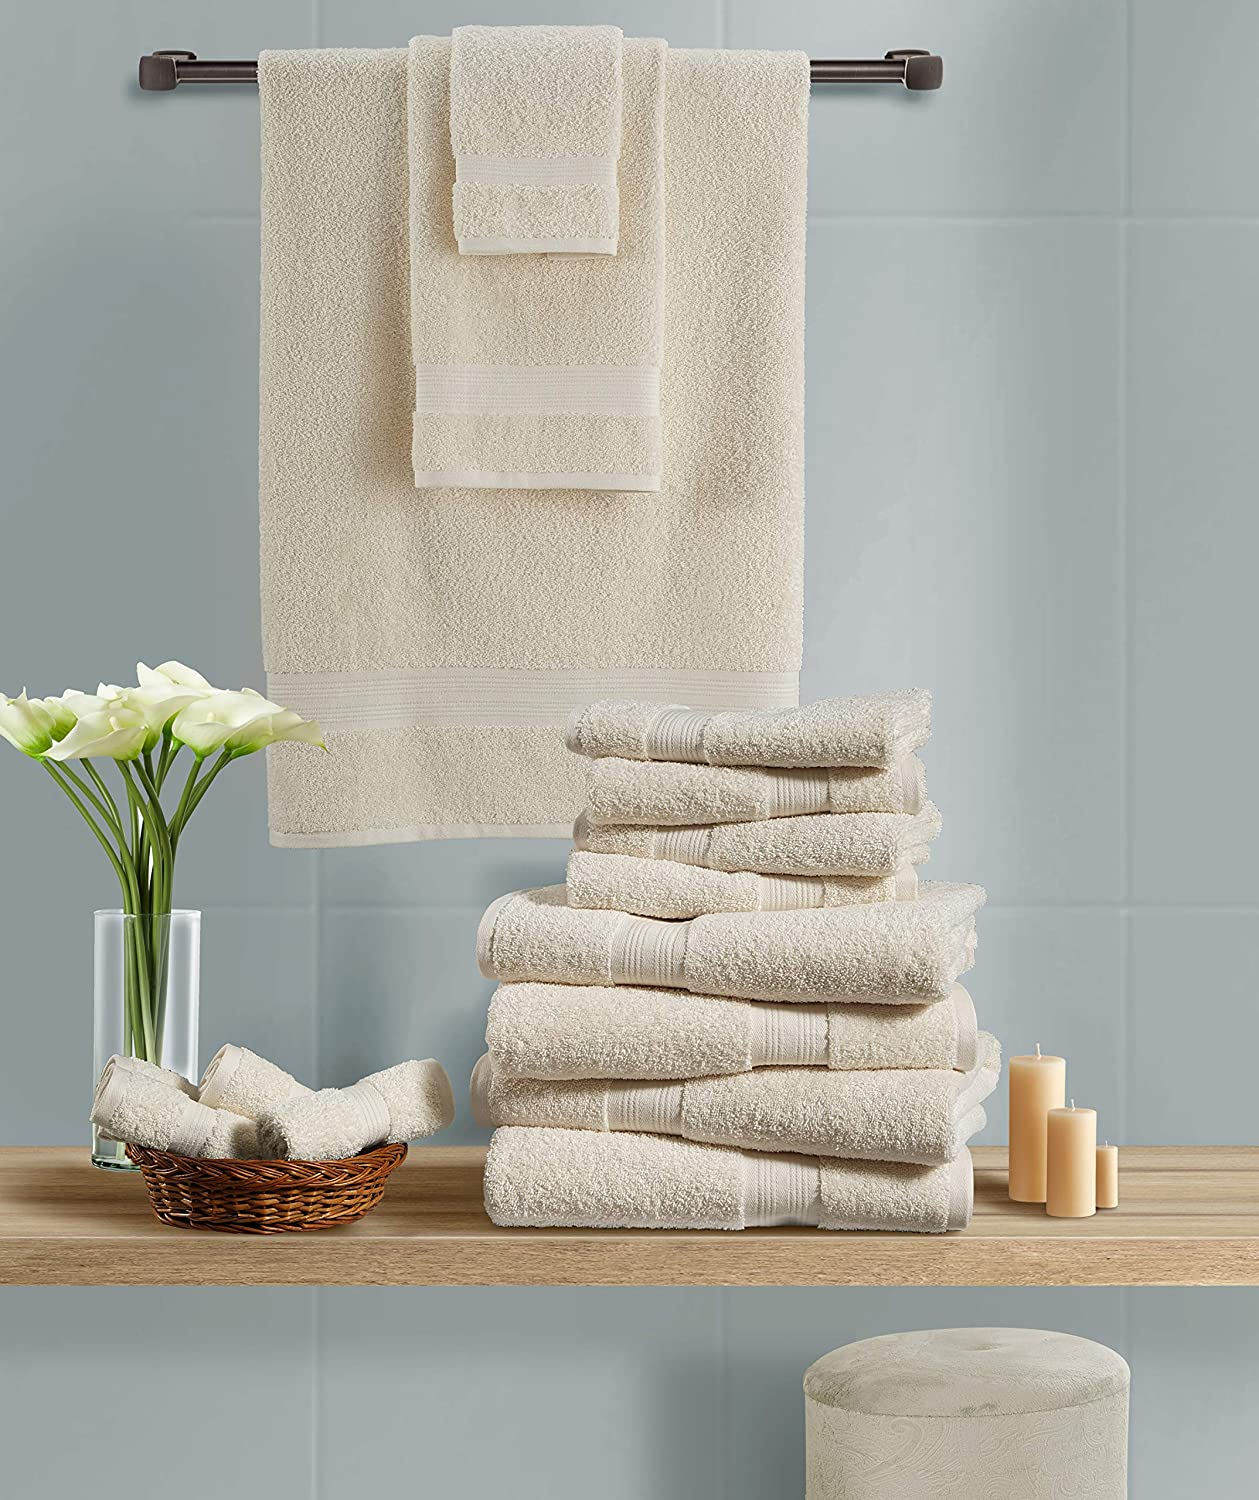 Cotton Cozy 100/% Cotton Indulgence 600 GSM Luxury Large Oversized Bath Towels Amercian Construction Soft Machine Washable 30 X 54 Inches Set of 4 Ivory Highly Absorbent